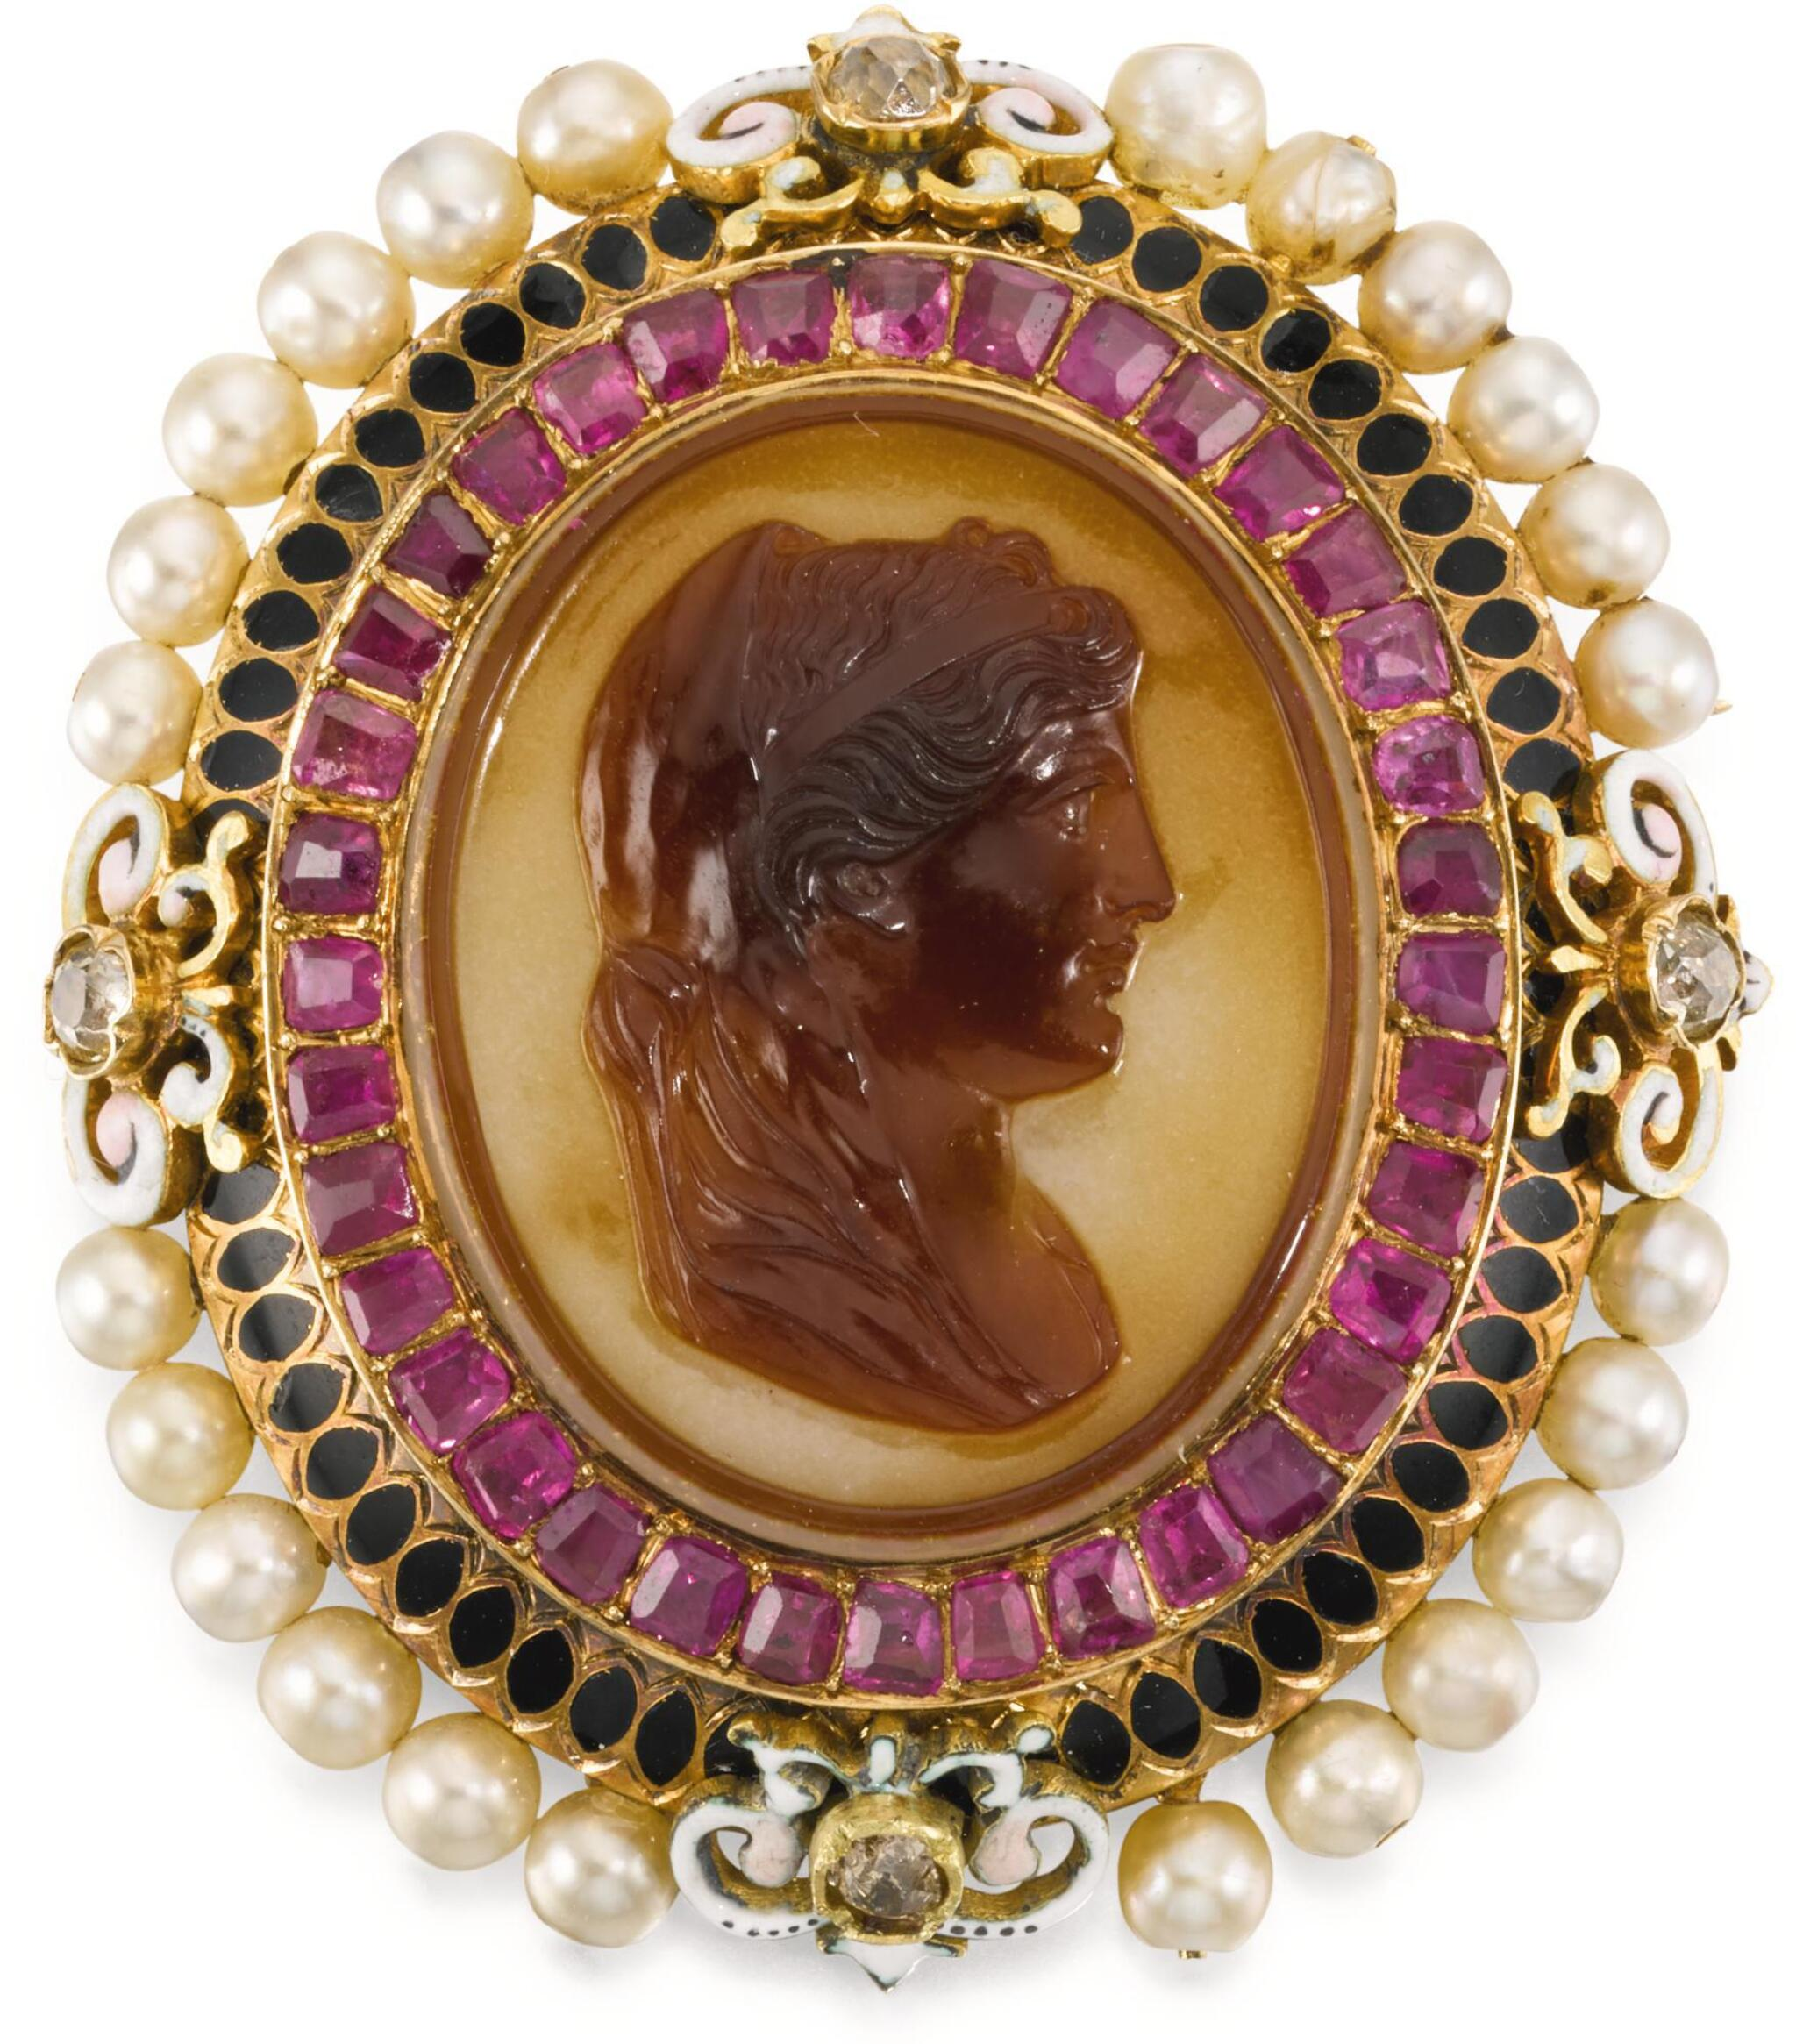 View full screen - View 1 of Lot 114. JOHAN GEORG (GEORGES) BISSINGER (1836-1912), FRENCH, PARIS, CIRCA 1870 | CAMEO WITH THE PROFILE OF A ROMAN WOMAN, PERHAPS A PTOLEMAIC PRINCESS.